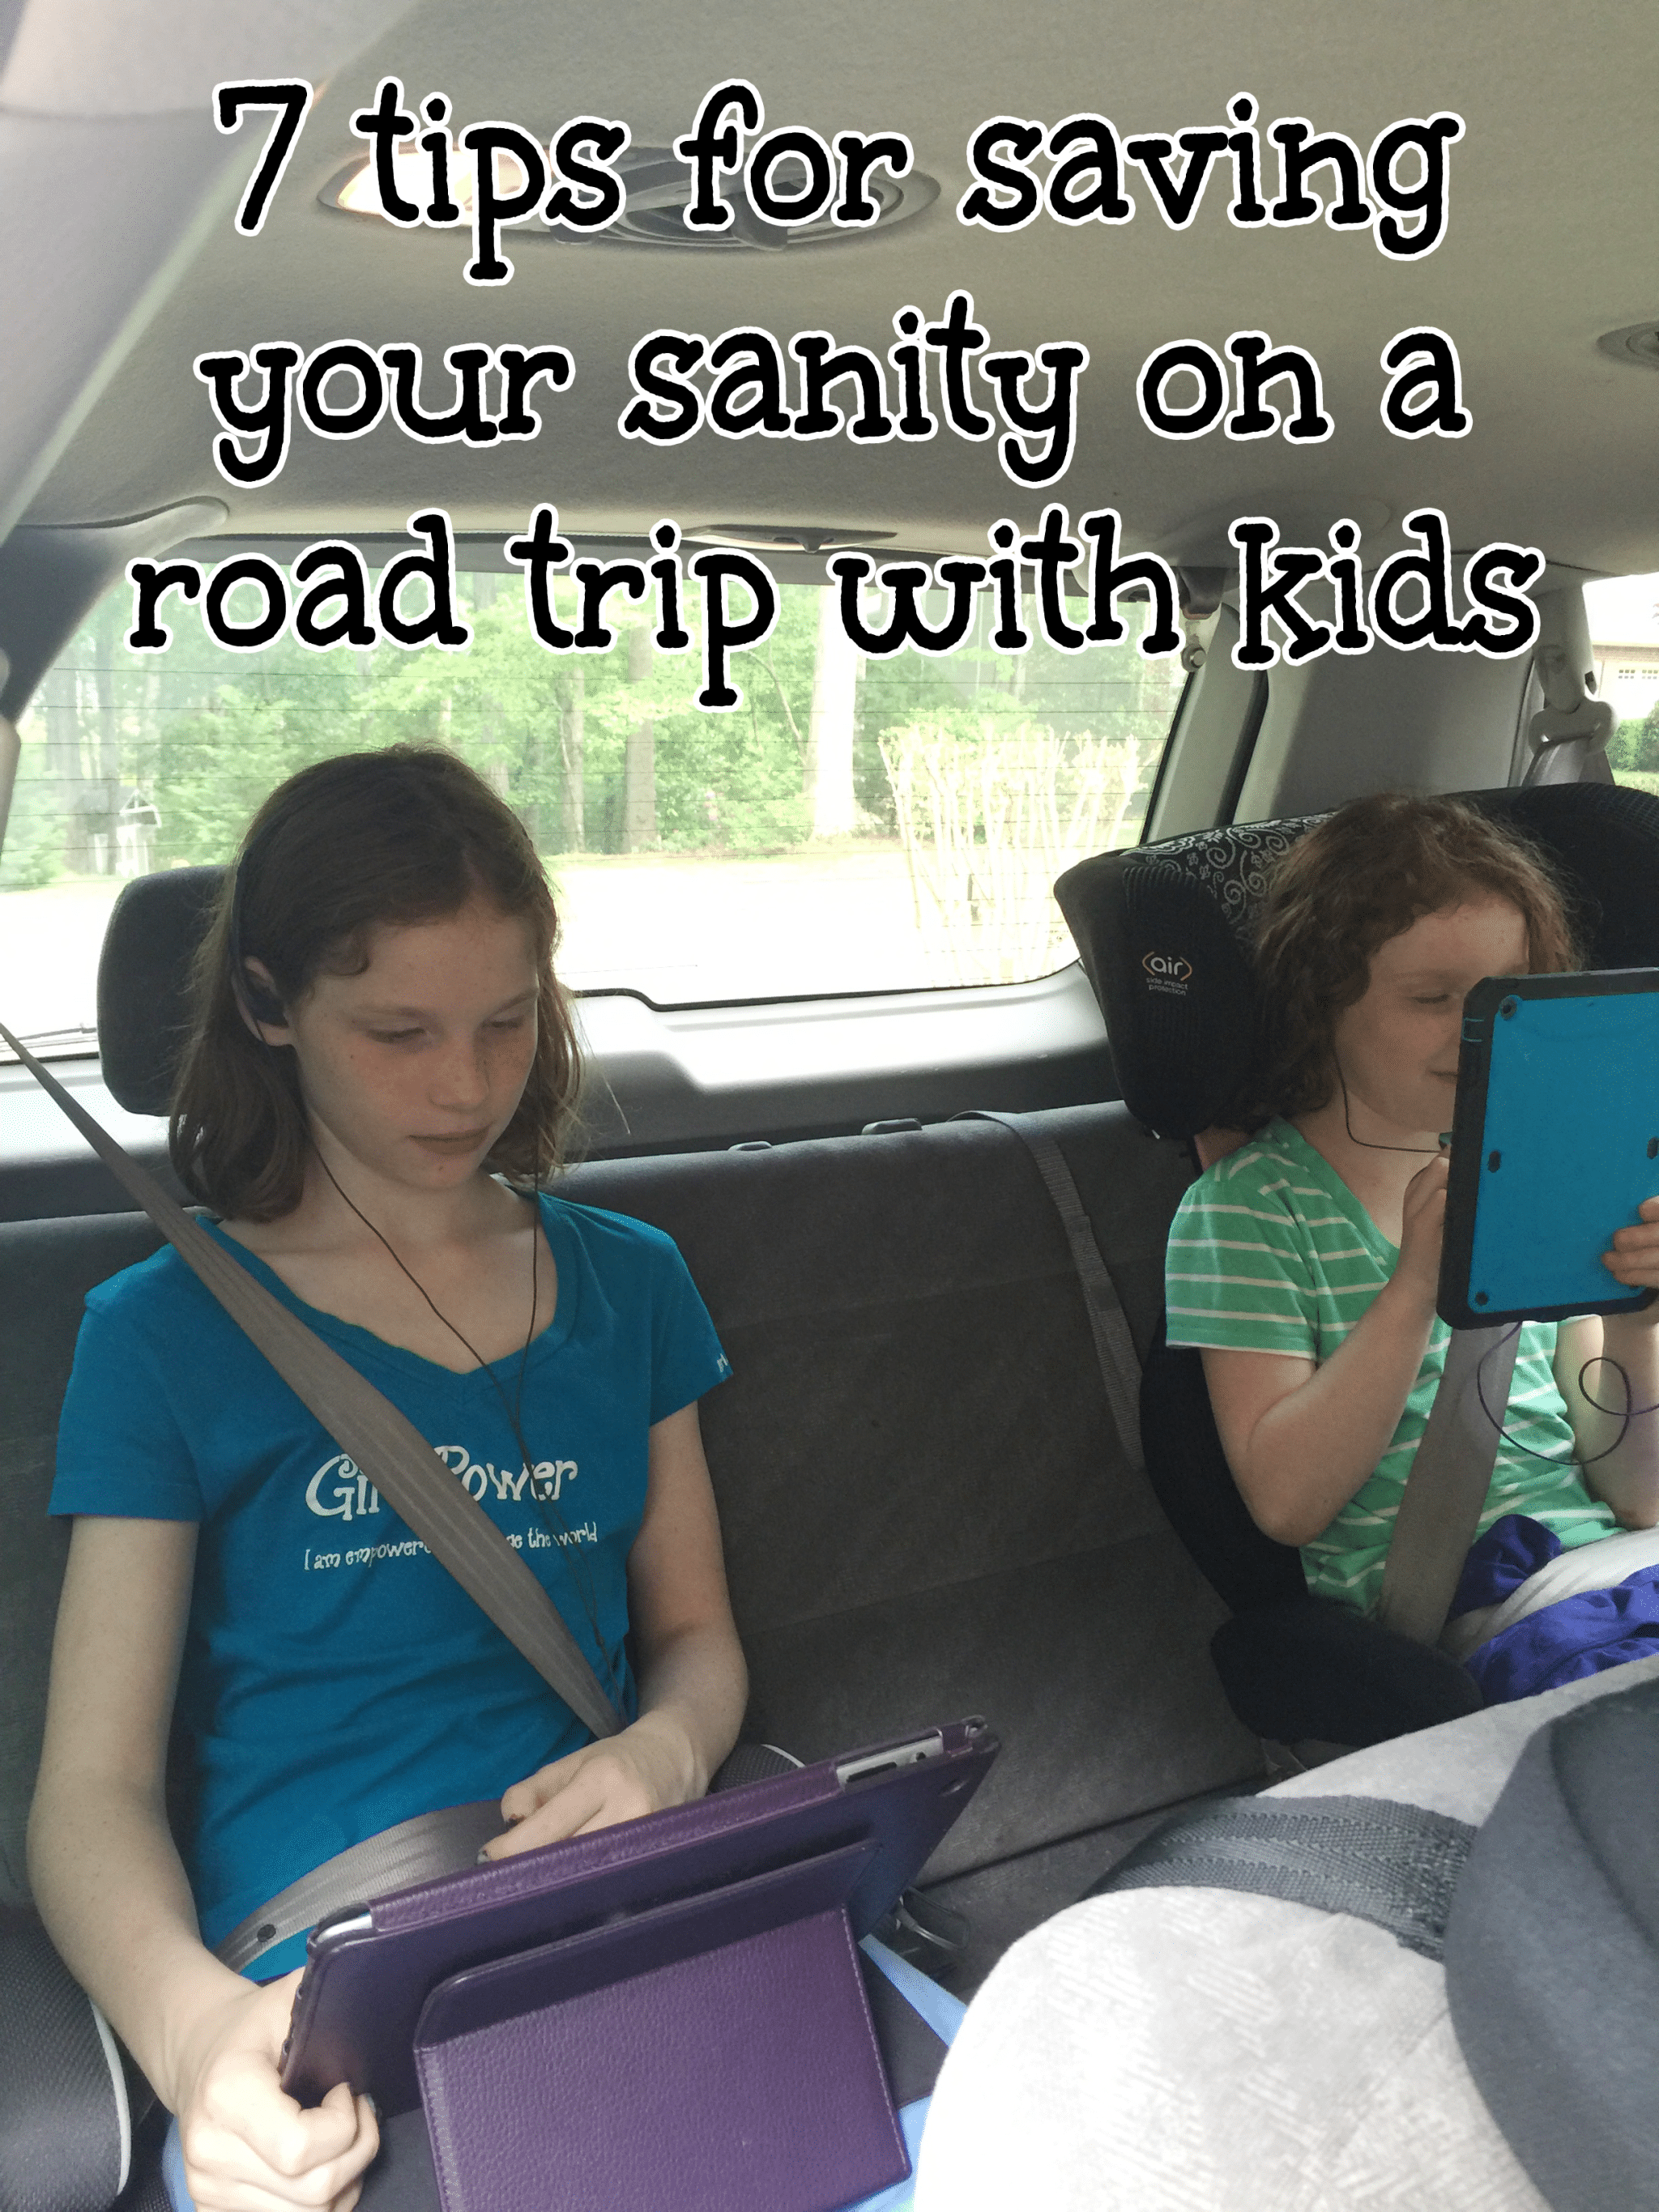 7 tips for saving your sanity on a road trip with kids